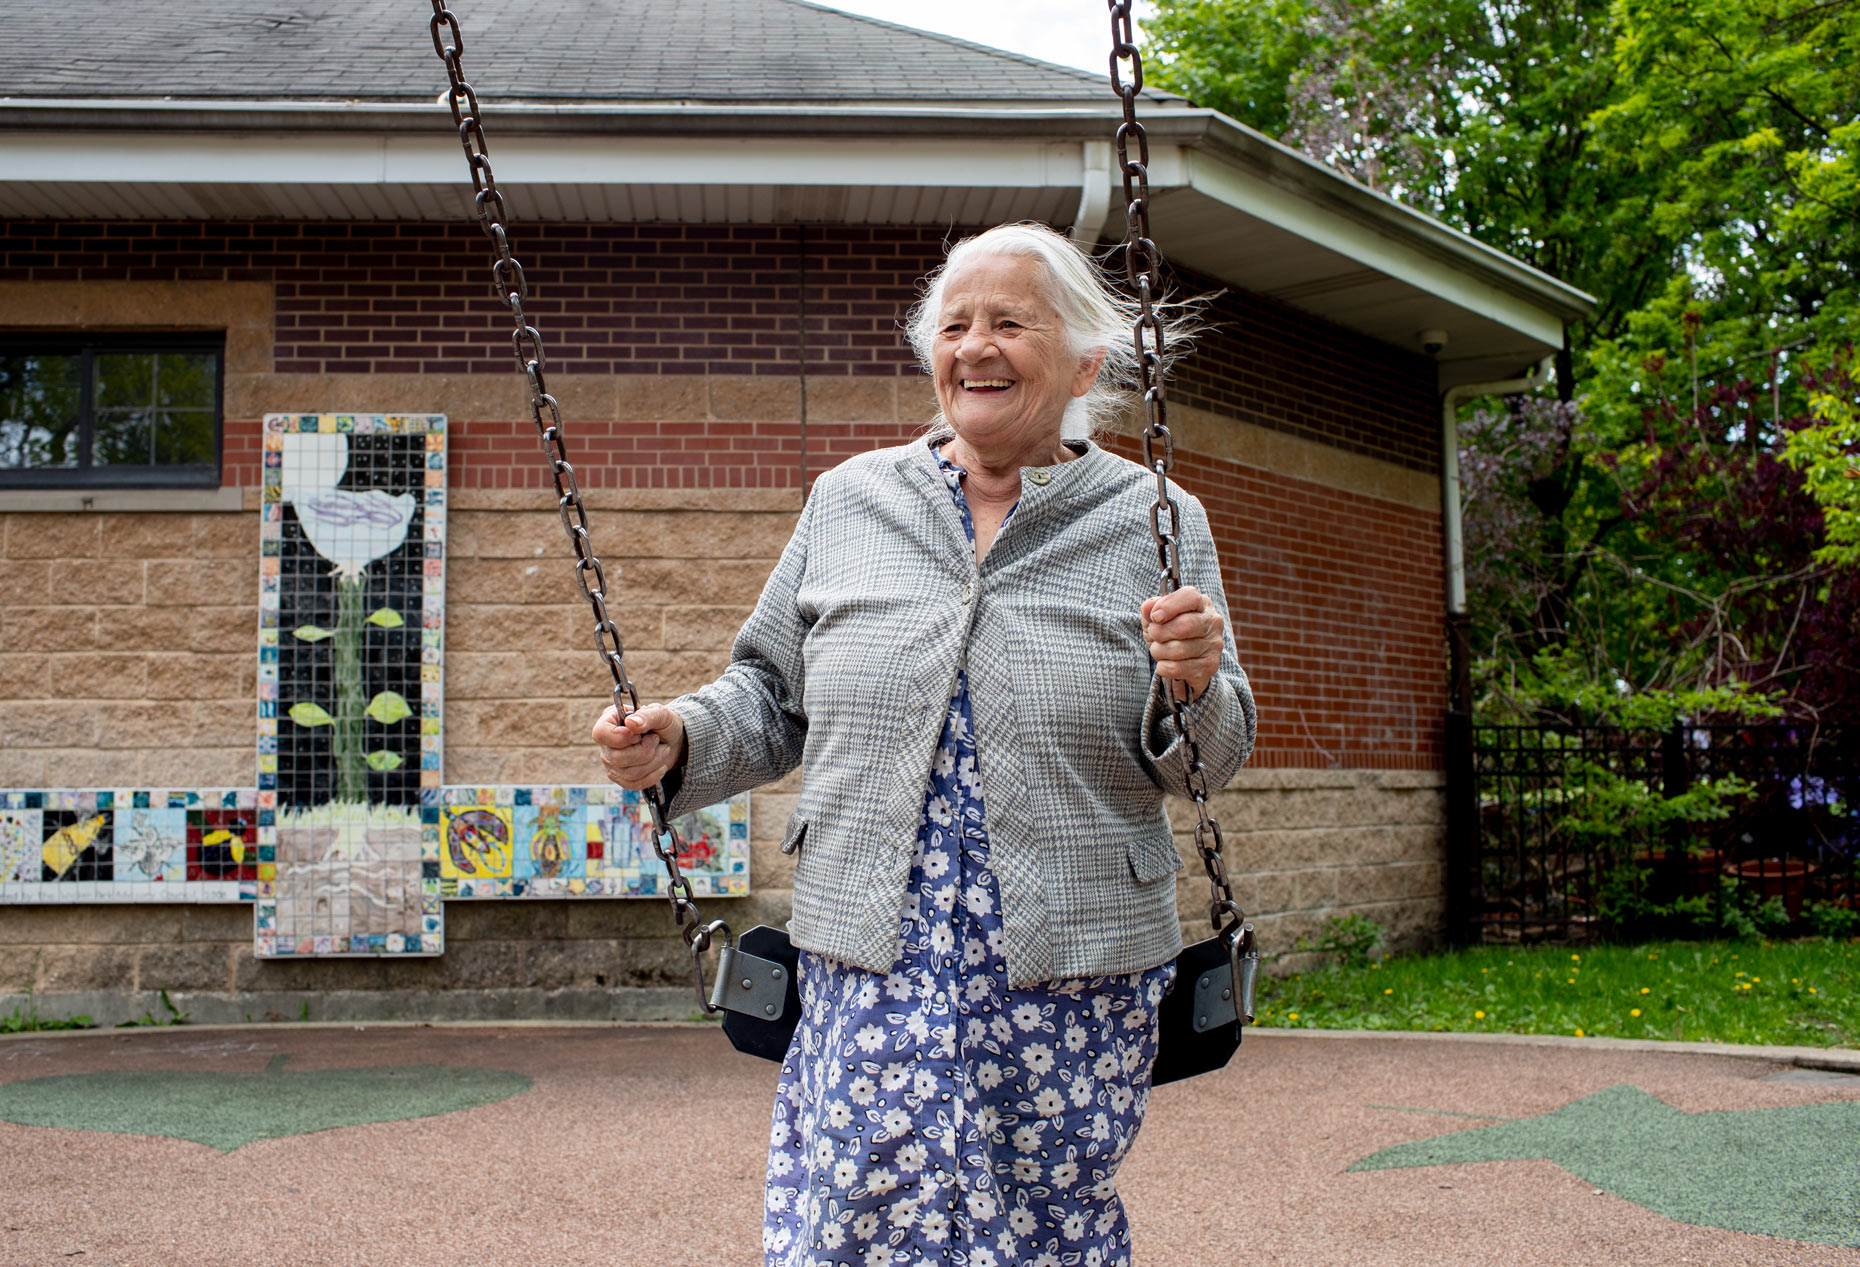 Senior woman on a swing